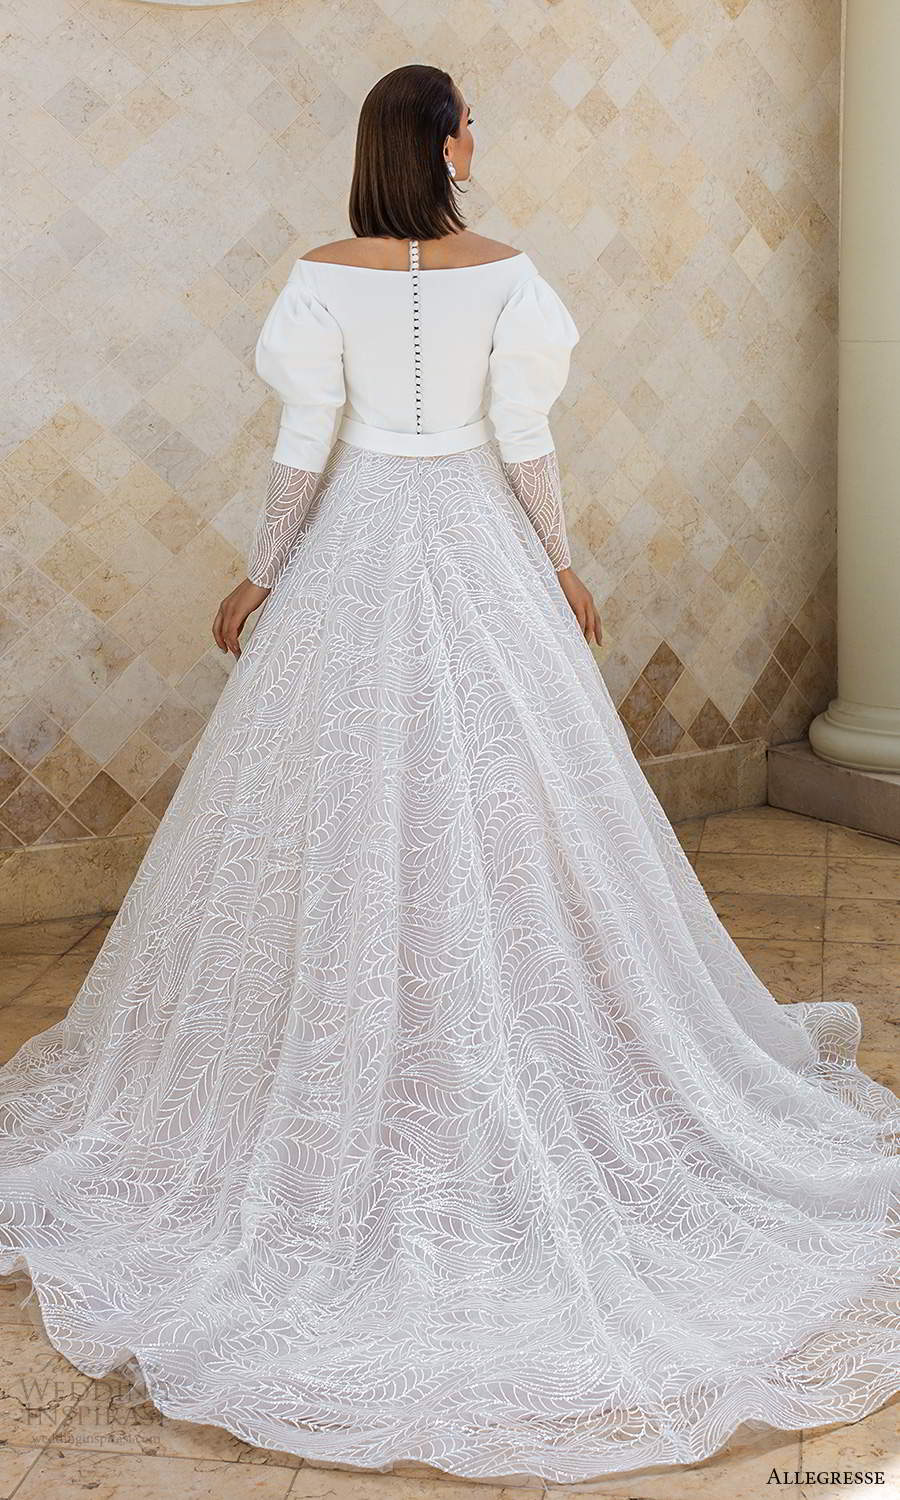 allegresse 2021 bridal long puff sleeves off shoulder v neckline clean bodice a line ball gown wedding dress chapel train (13) bv